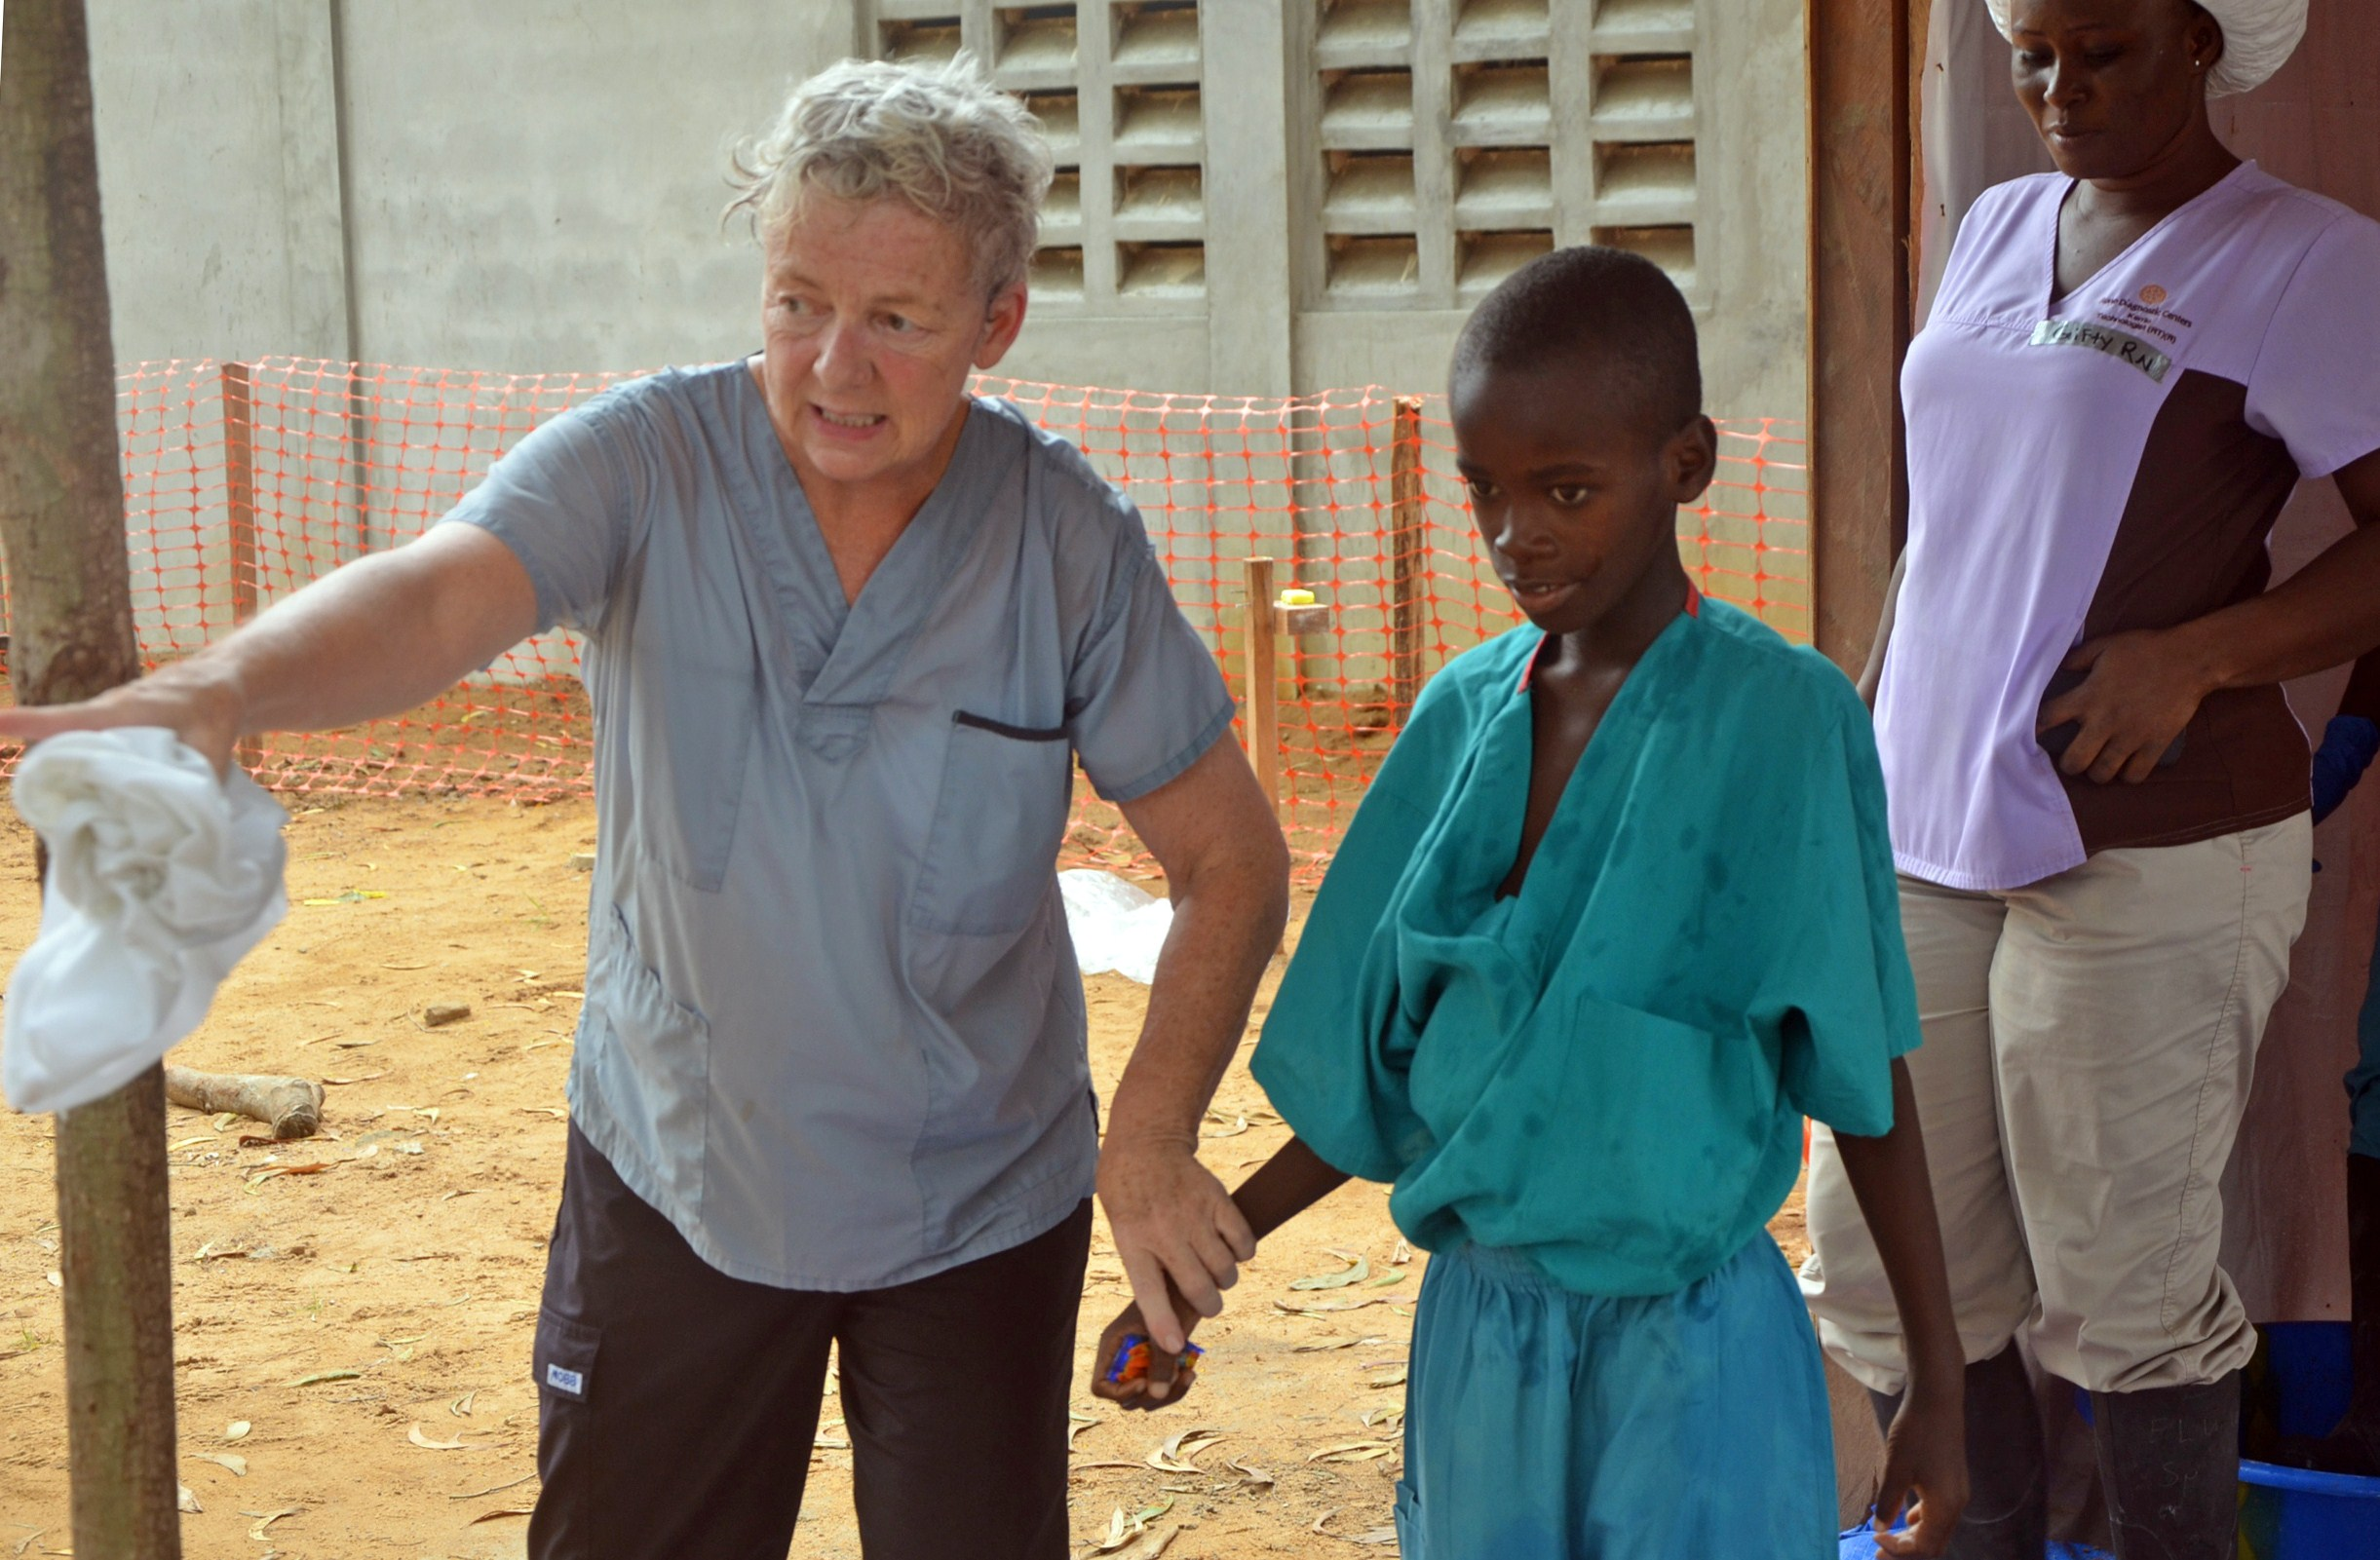 A 10-year-old boy walks with a doctor from Christian charity Samaritan's Purse after being taken out of quarantine and receiving treatment following his mother's death caused by the Ebola virus at the ELWA Hospital in the Liberian capital, Monrovia, on July 24, 2014